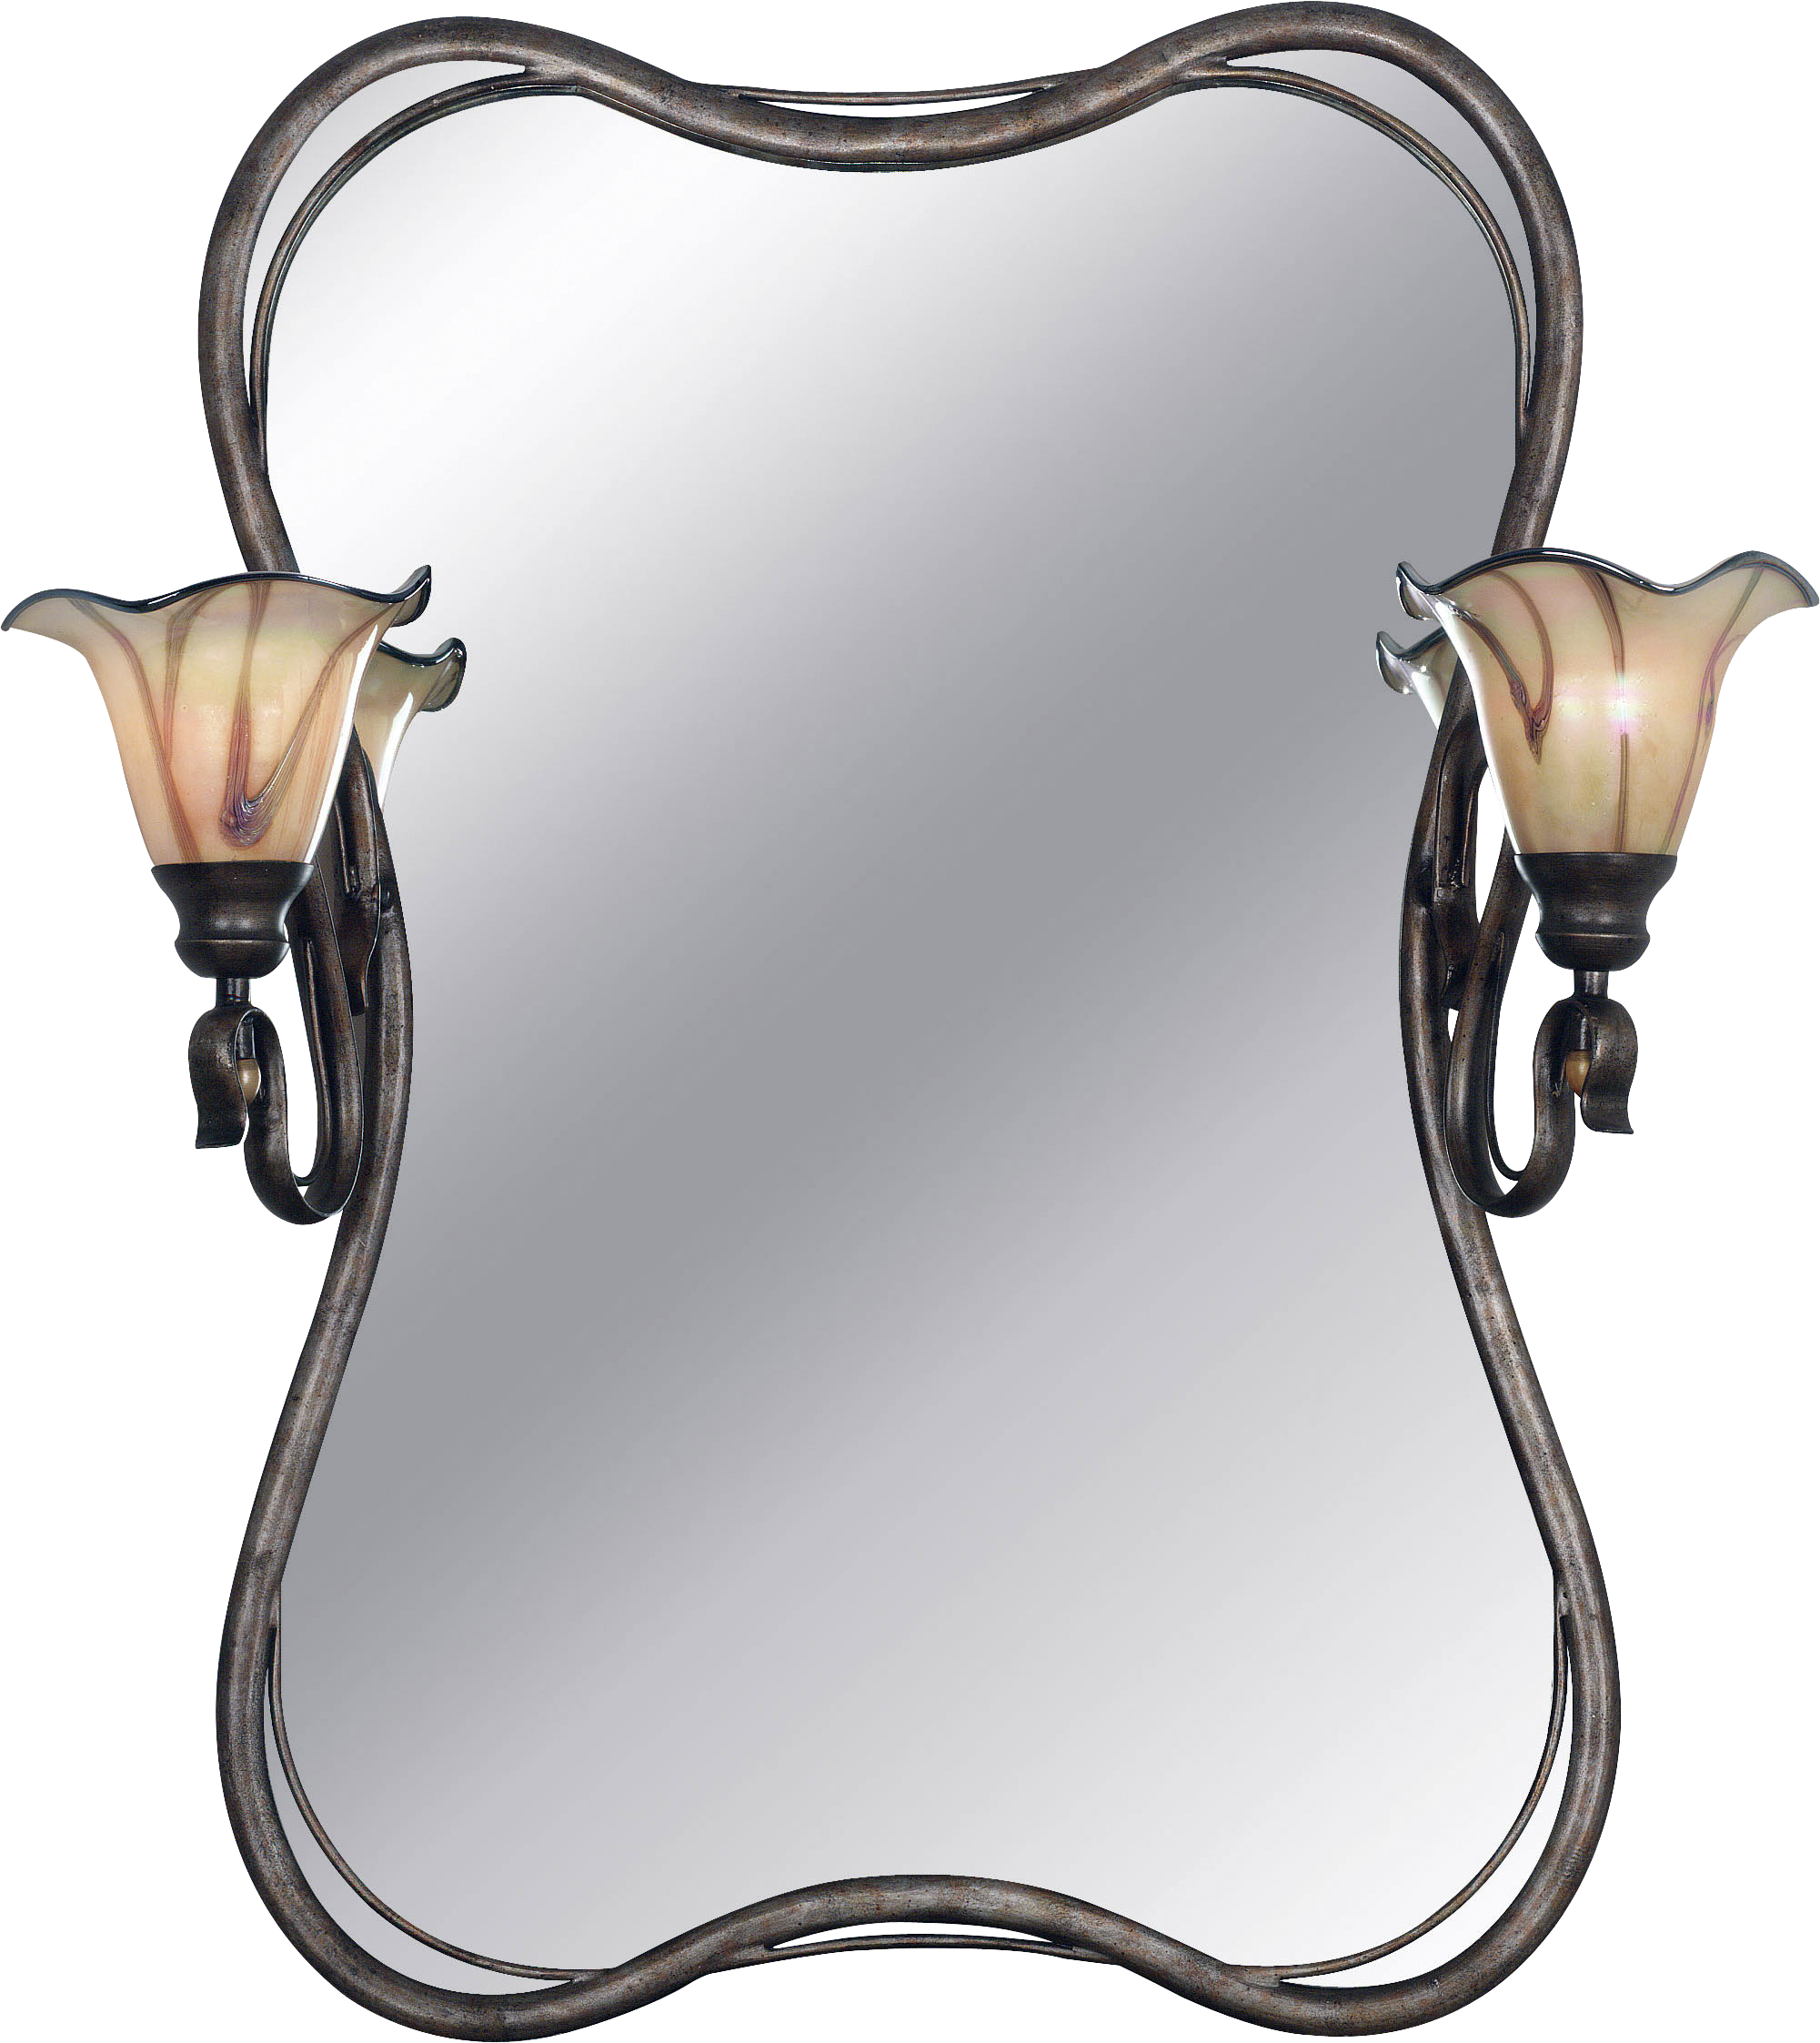 svg Mirror clipart. Transparent free on dumielauxepices